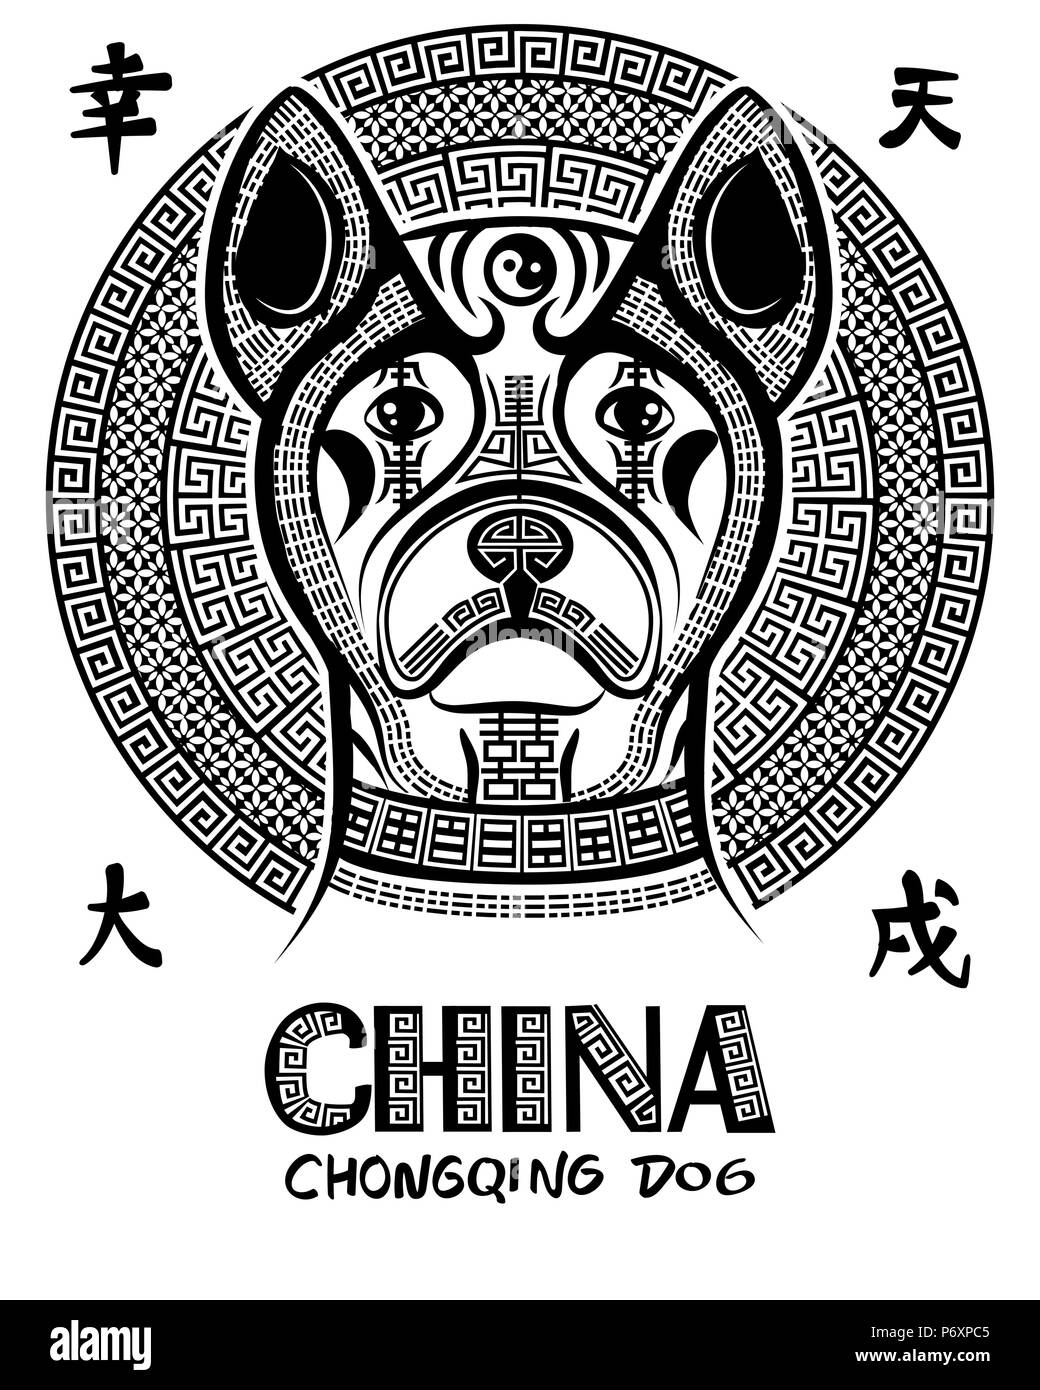 Vector image of an Chinese dog.Ancient chinese ornament. Chongqing dog breed. - Stock Image